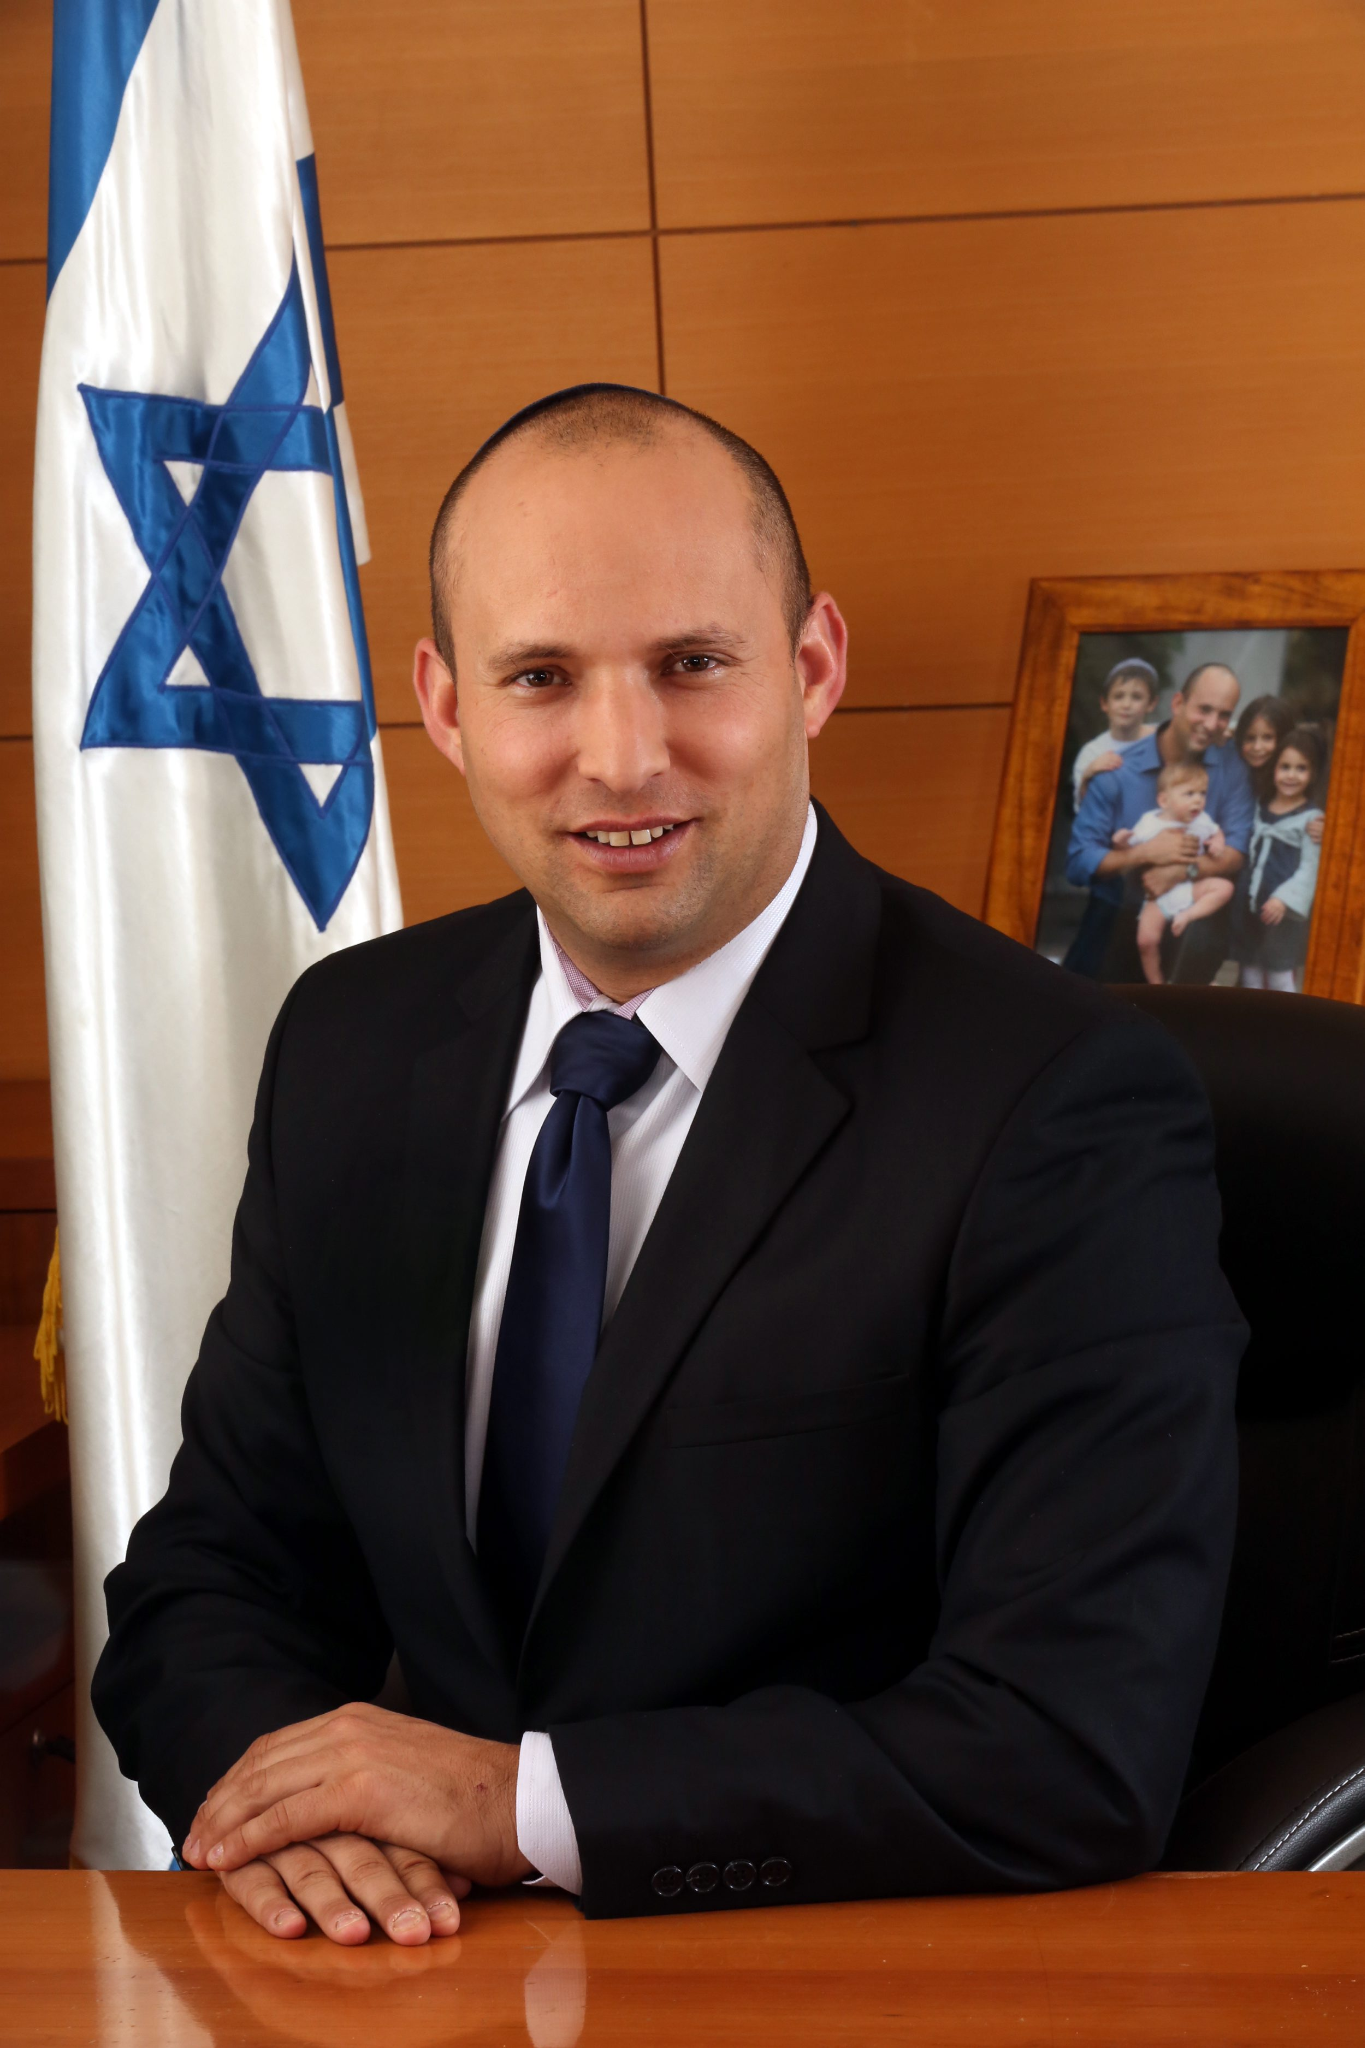 Biography of Israeli extremist Naftali Bennett who become the  Prime Minister of Israel